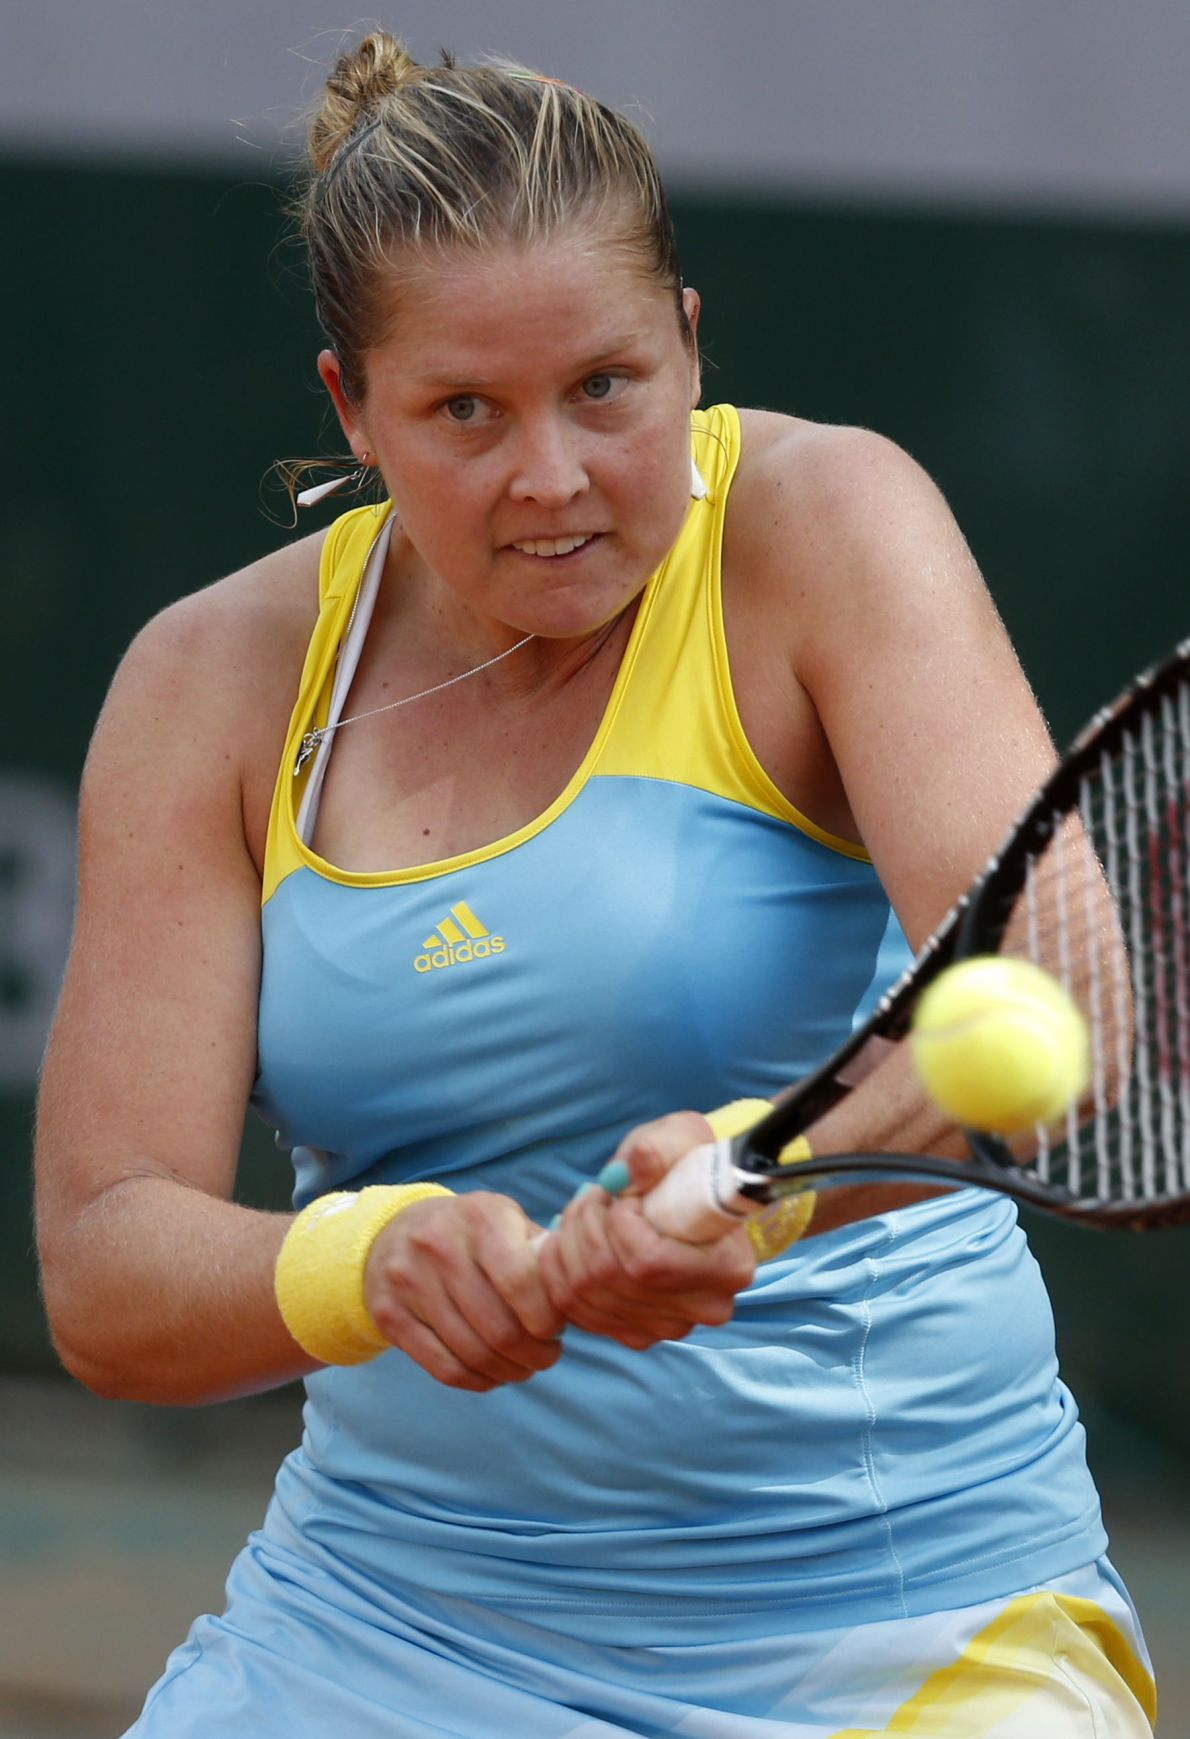 Daniel Island's Rogers loses in second round of French Open